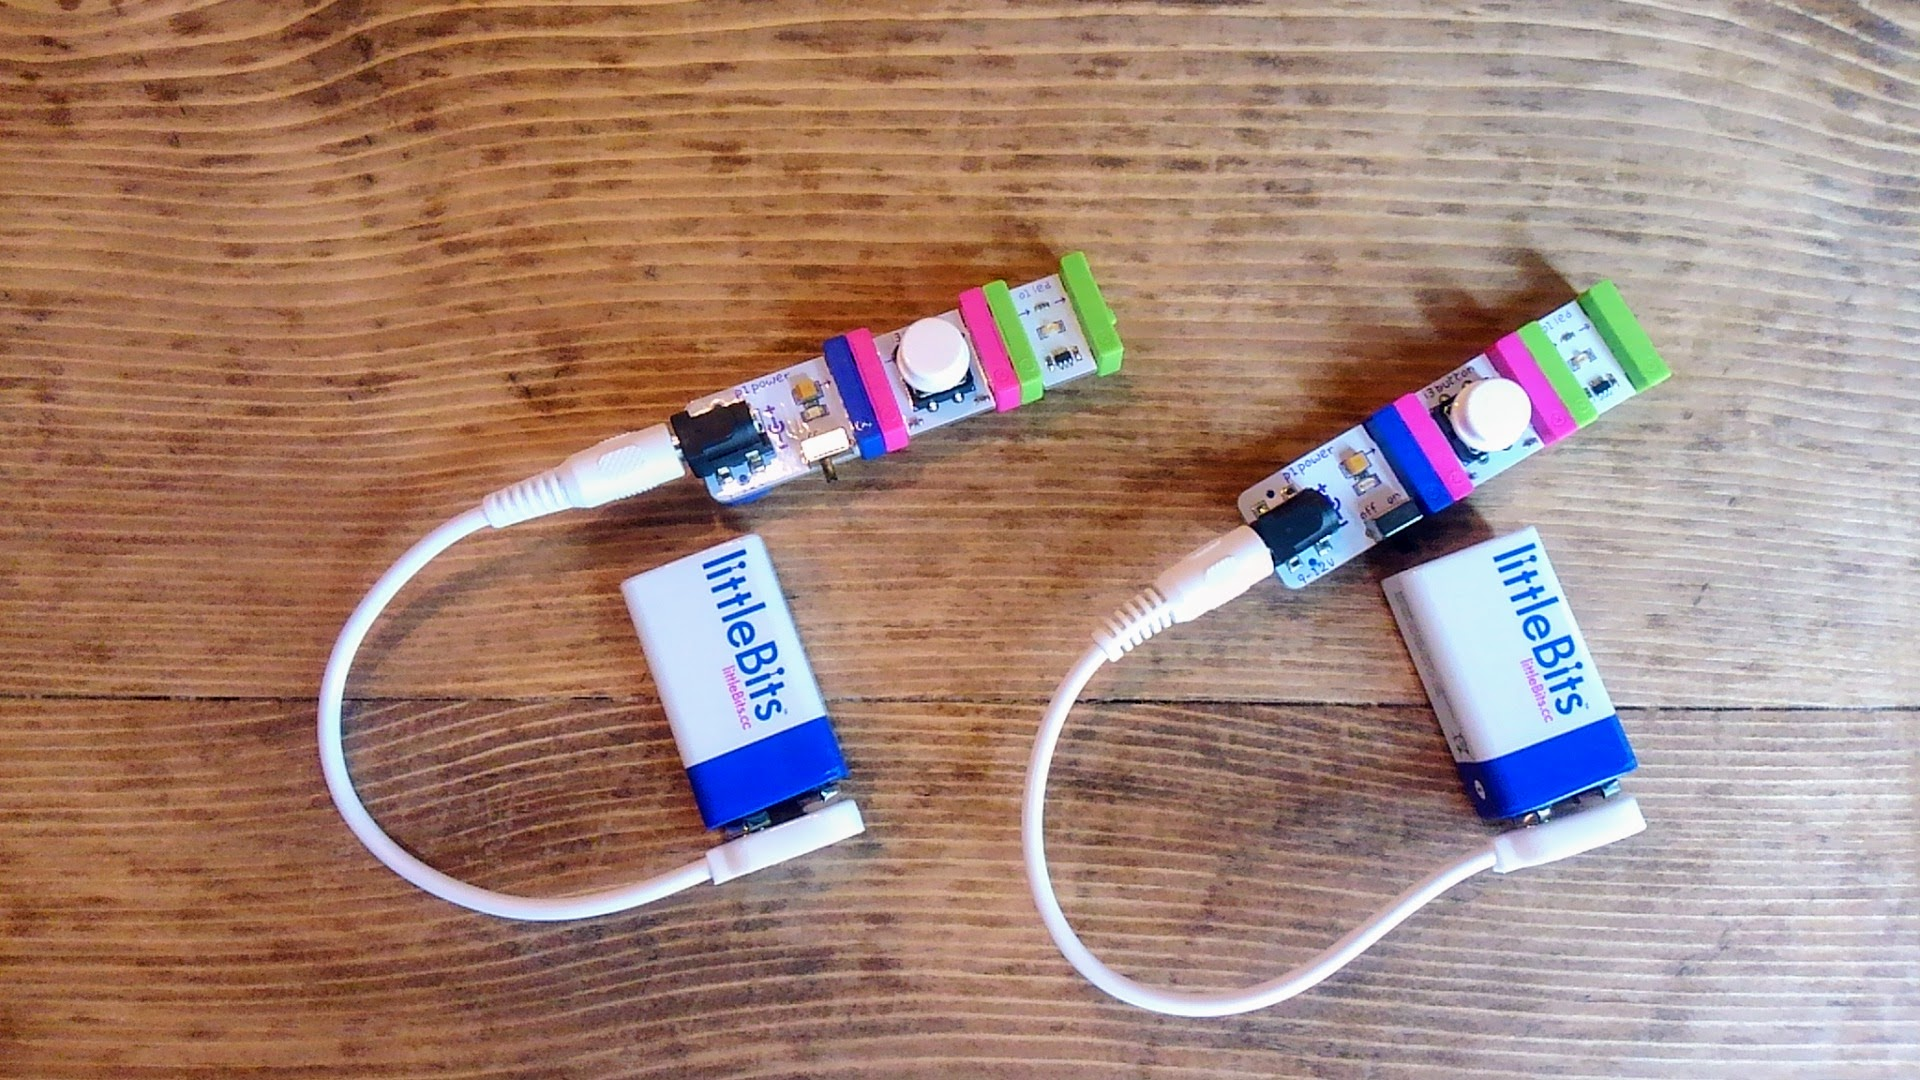 littlebits-event-0408_2.jpg)